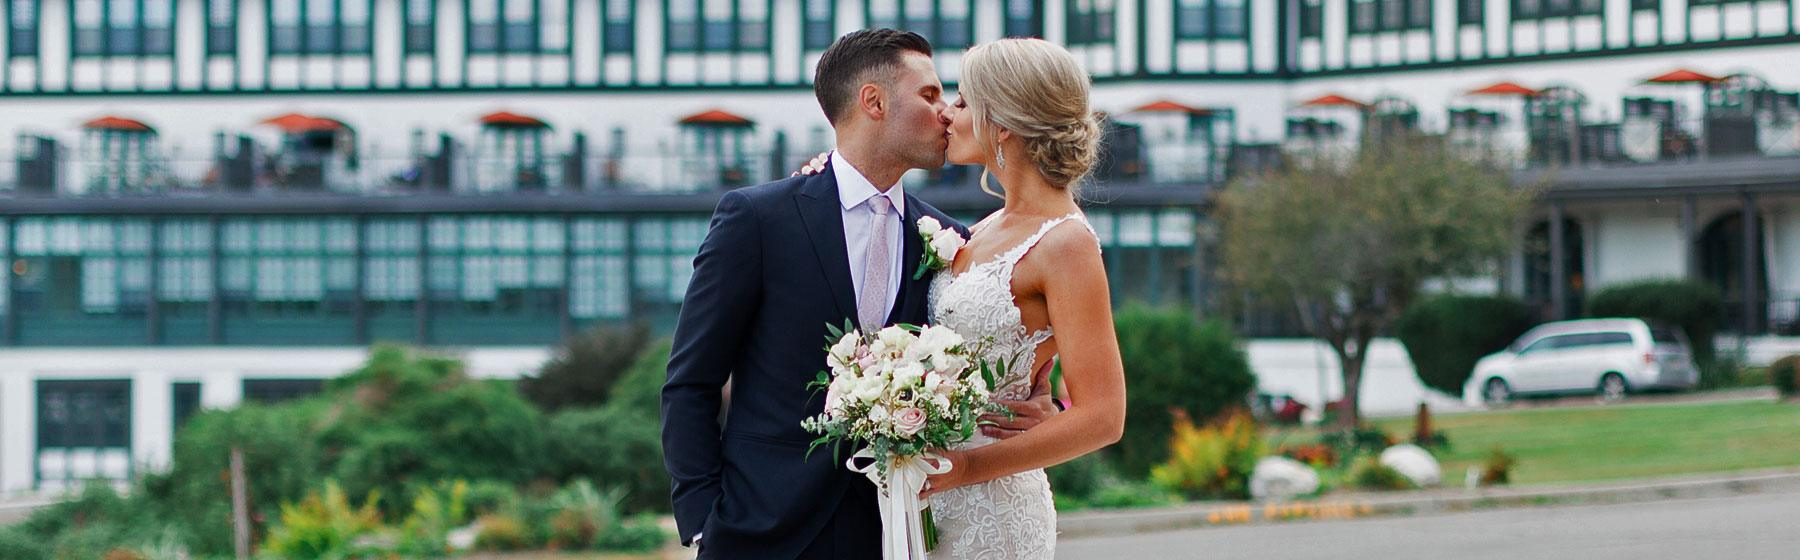 Weddings at Algonquinresort, Andrews By The Sea